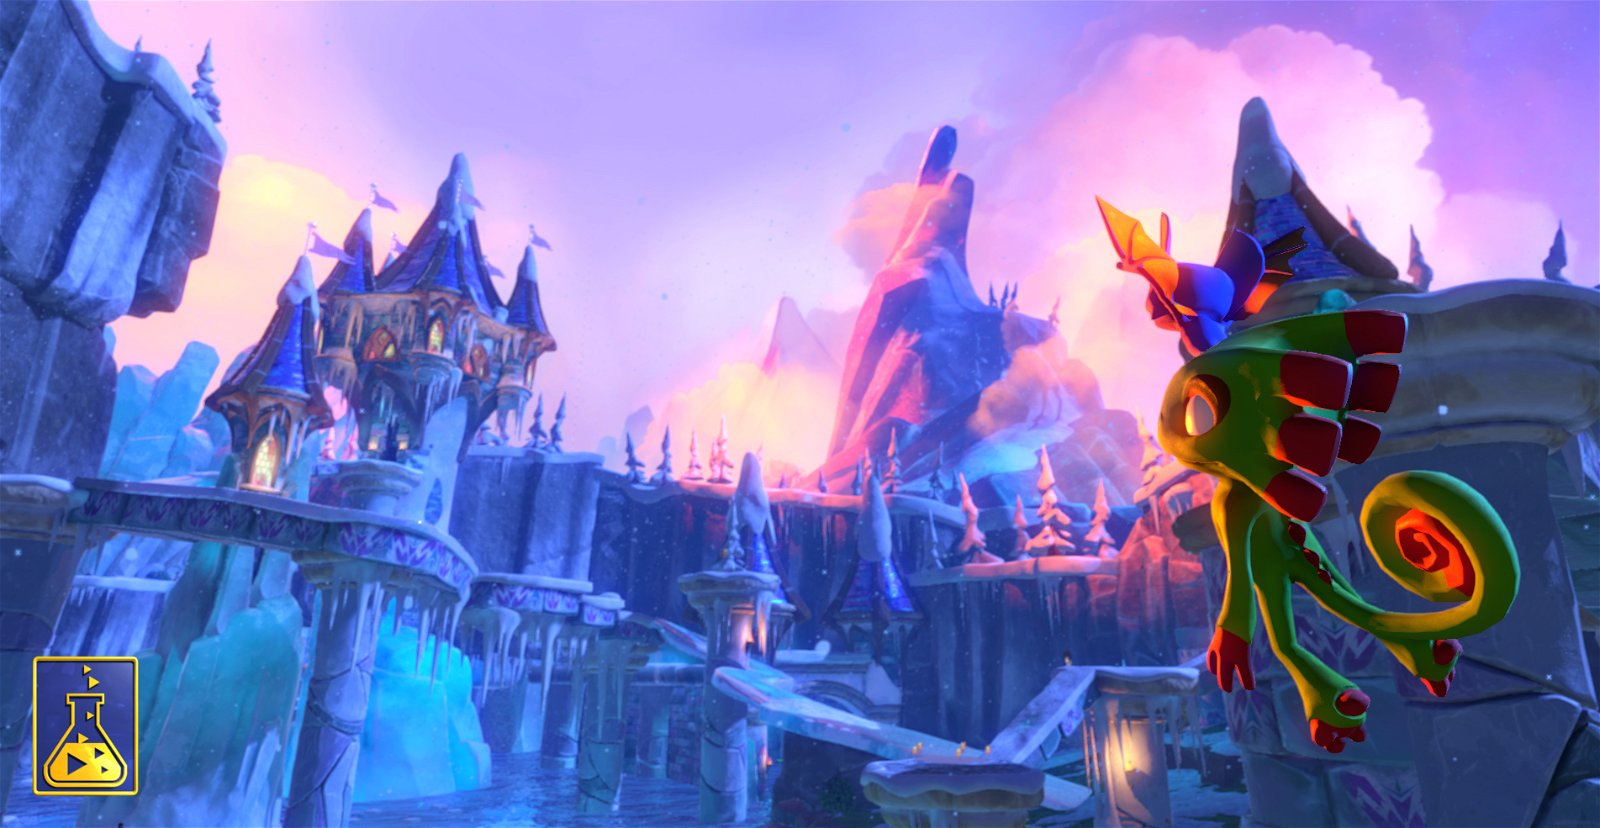 Playtonic Games Releases New Yooka-Laylee Screenshots, Info 2